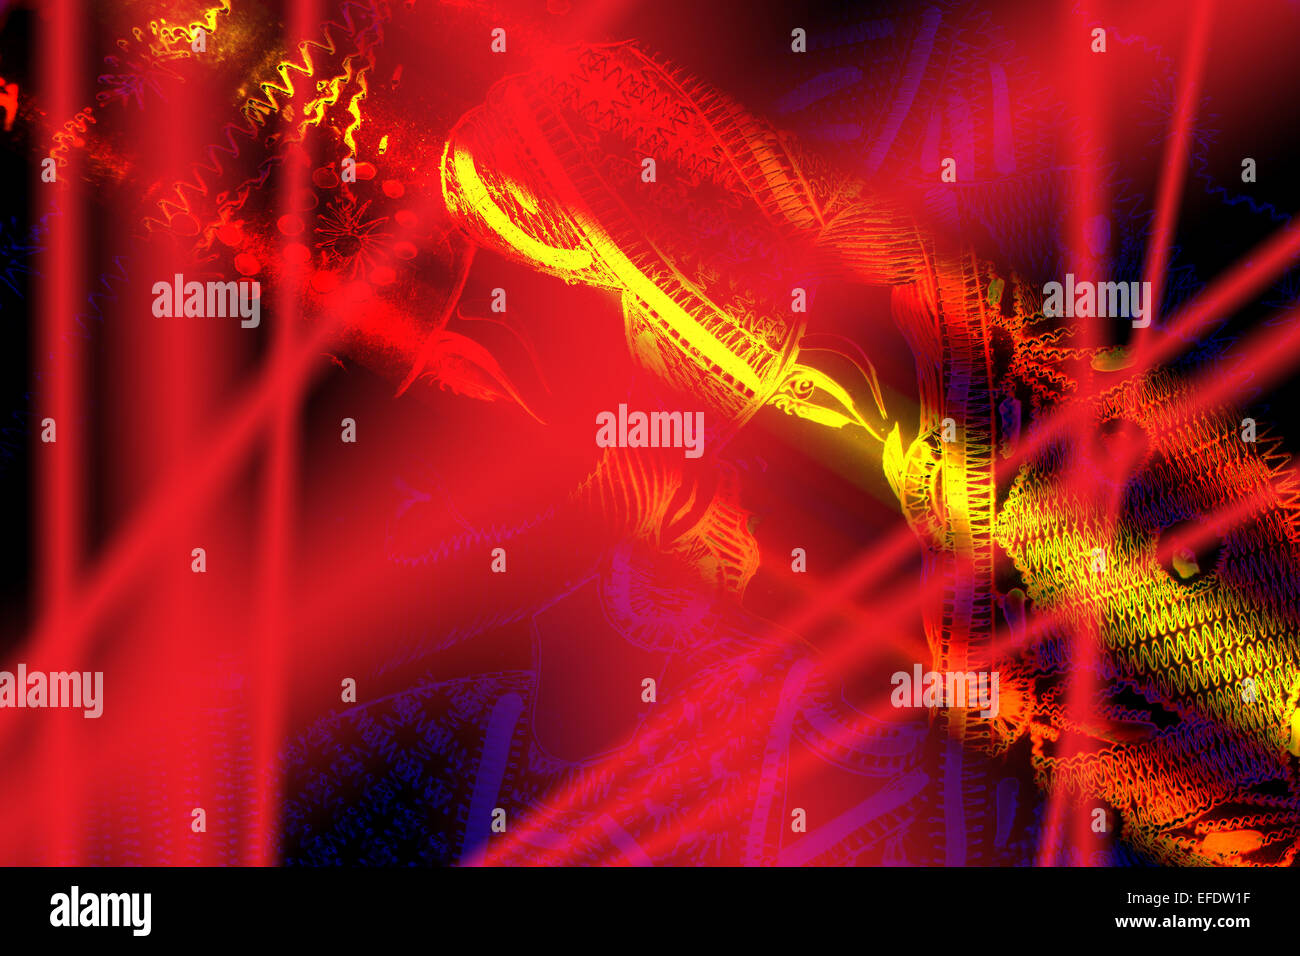 a show of lights, a concert state of lights, lights shining down,art design,business design, background , perfect - Stock Image